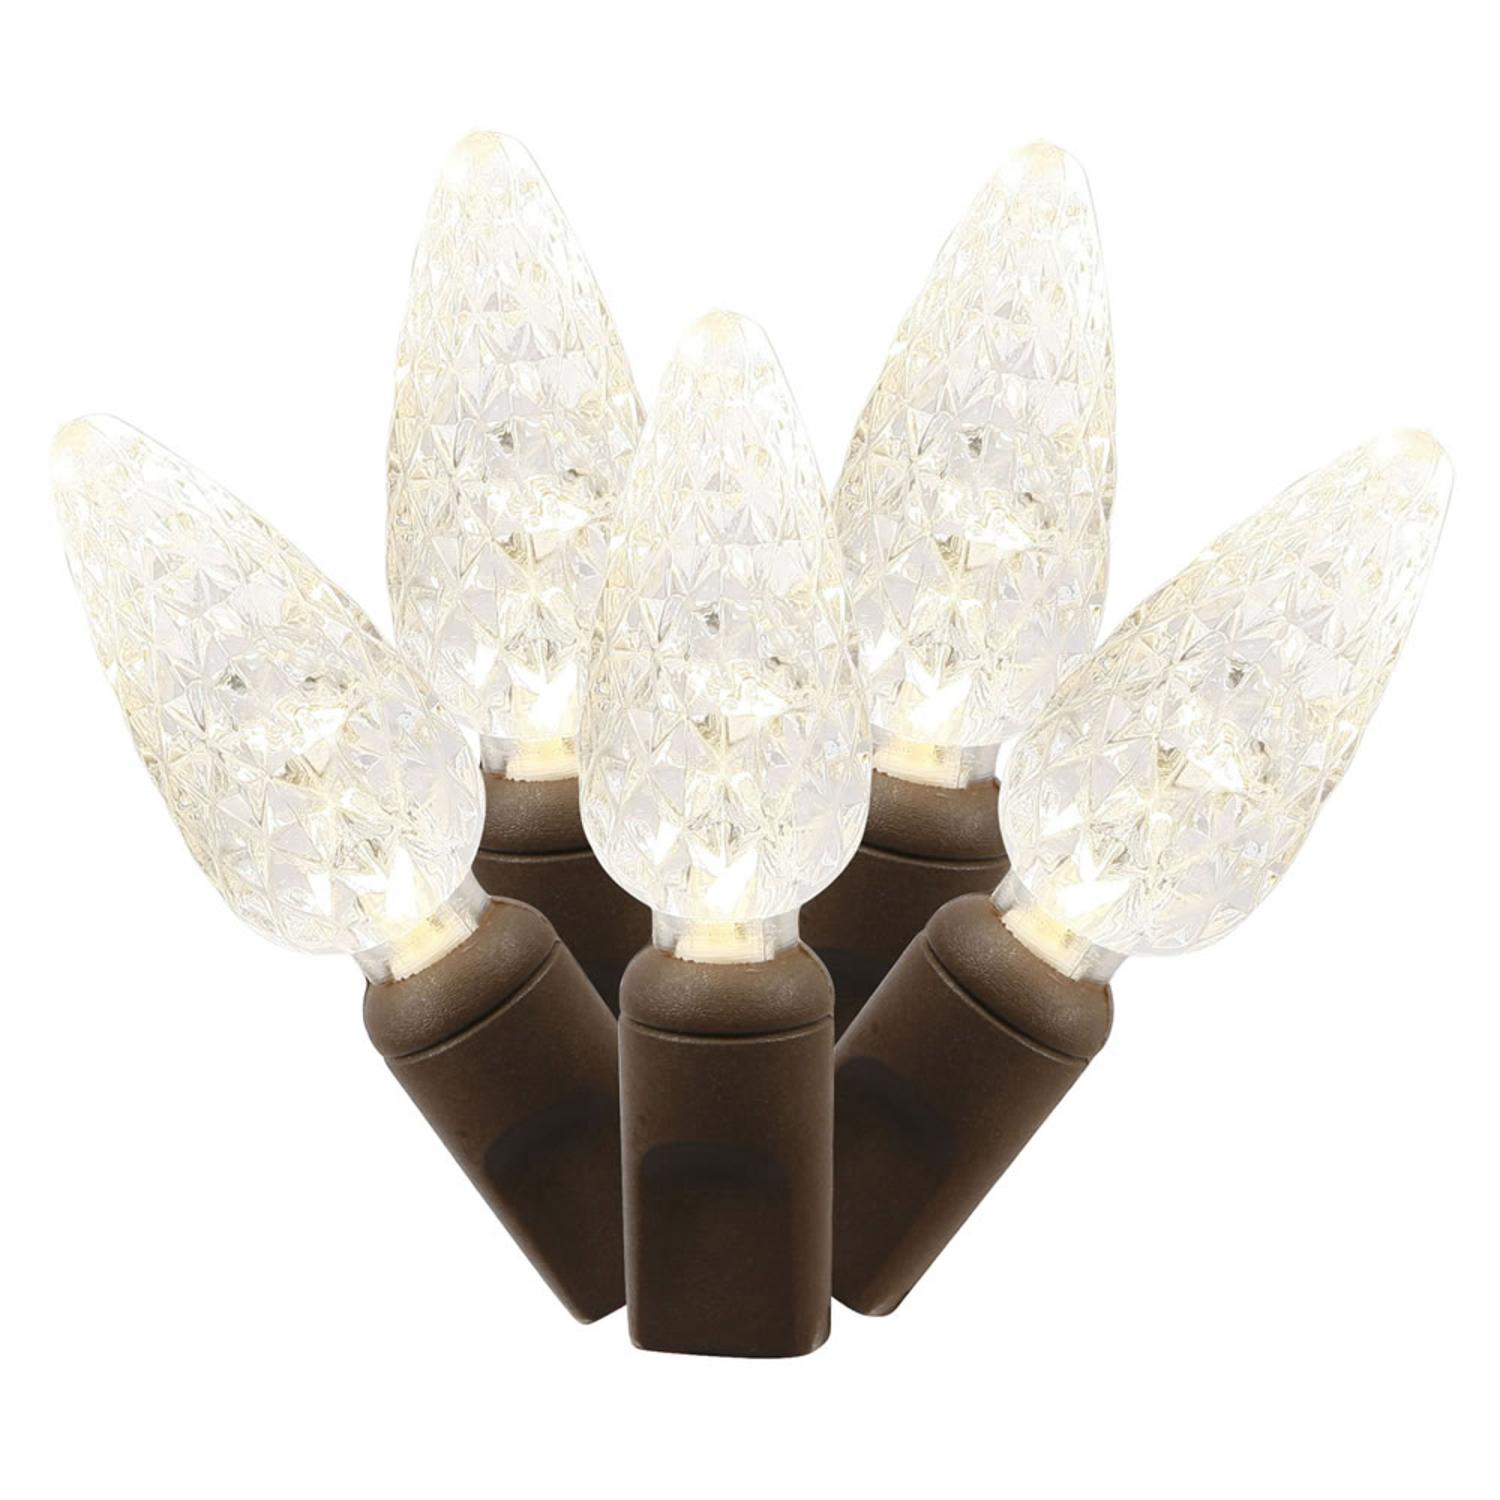 Set of 50 Warm White Commercial Grade LED C6 Christmas Lights - Brown Wire